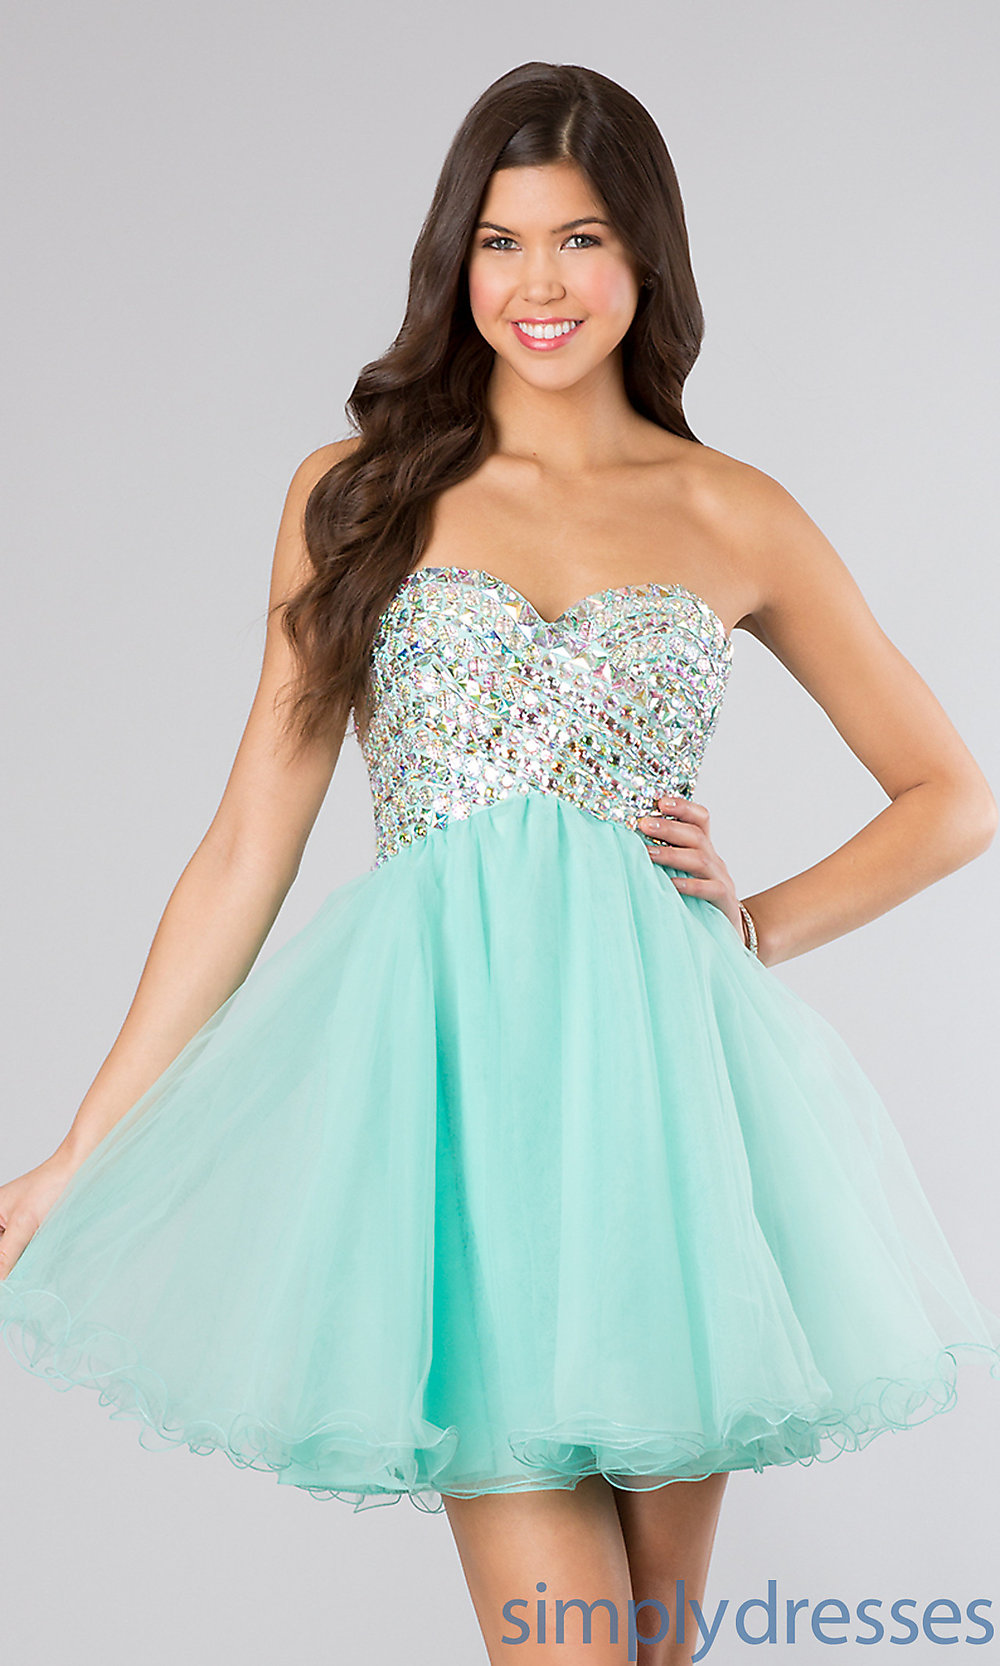 short formal dresses for juniors – Fashion dresses